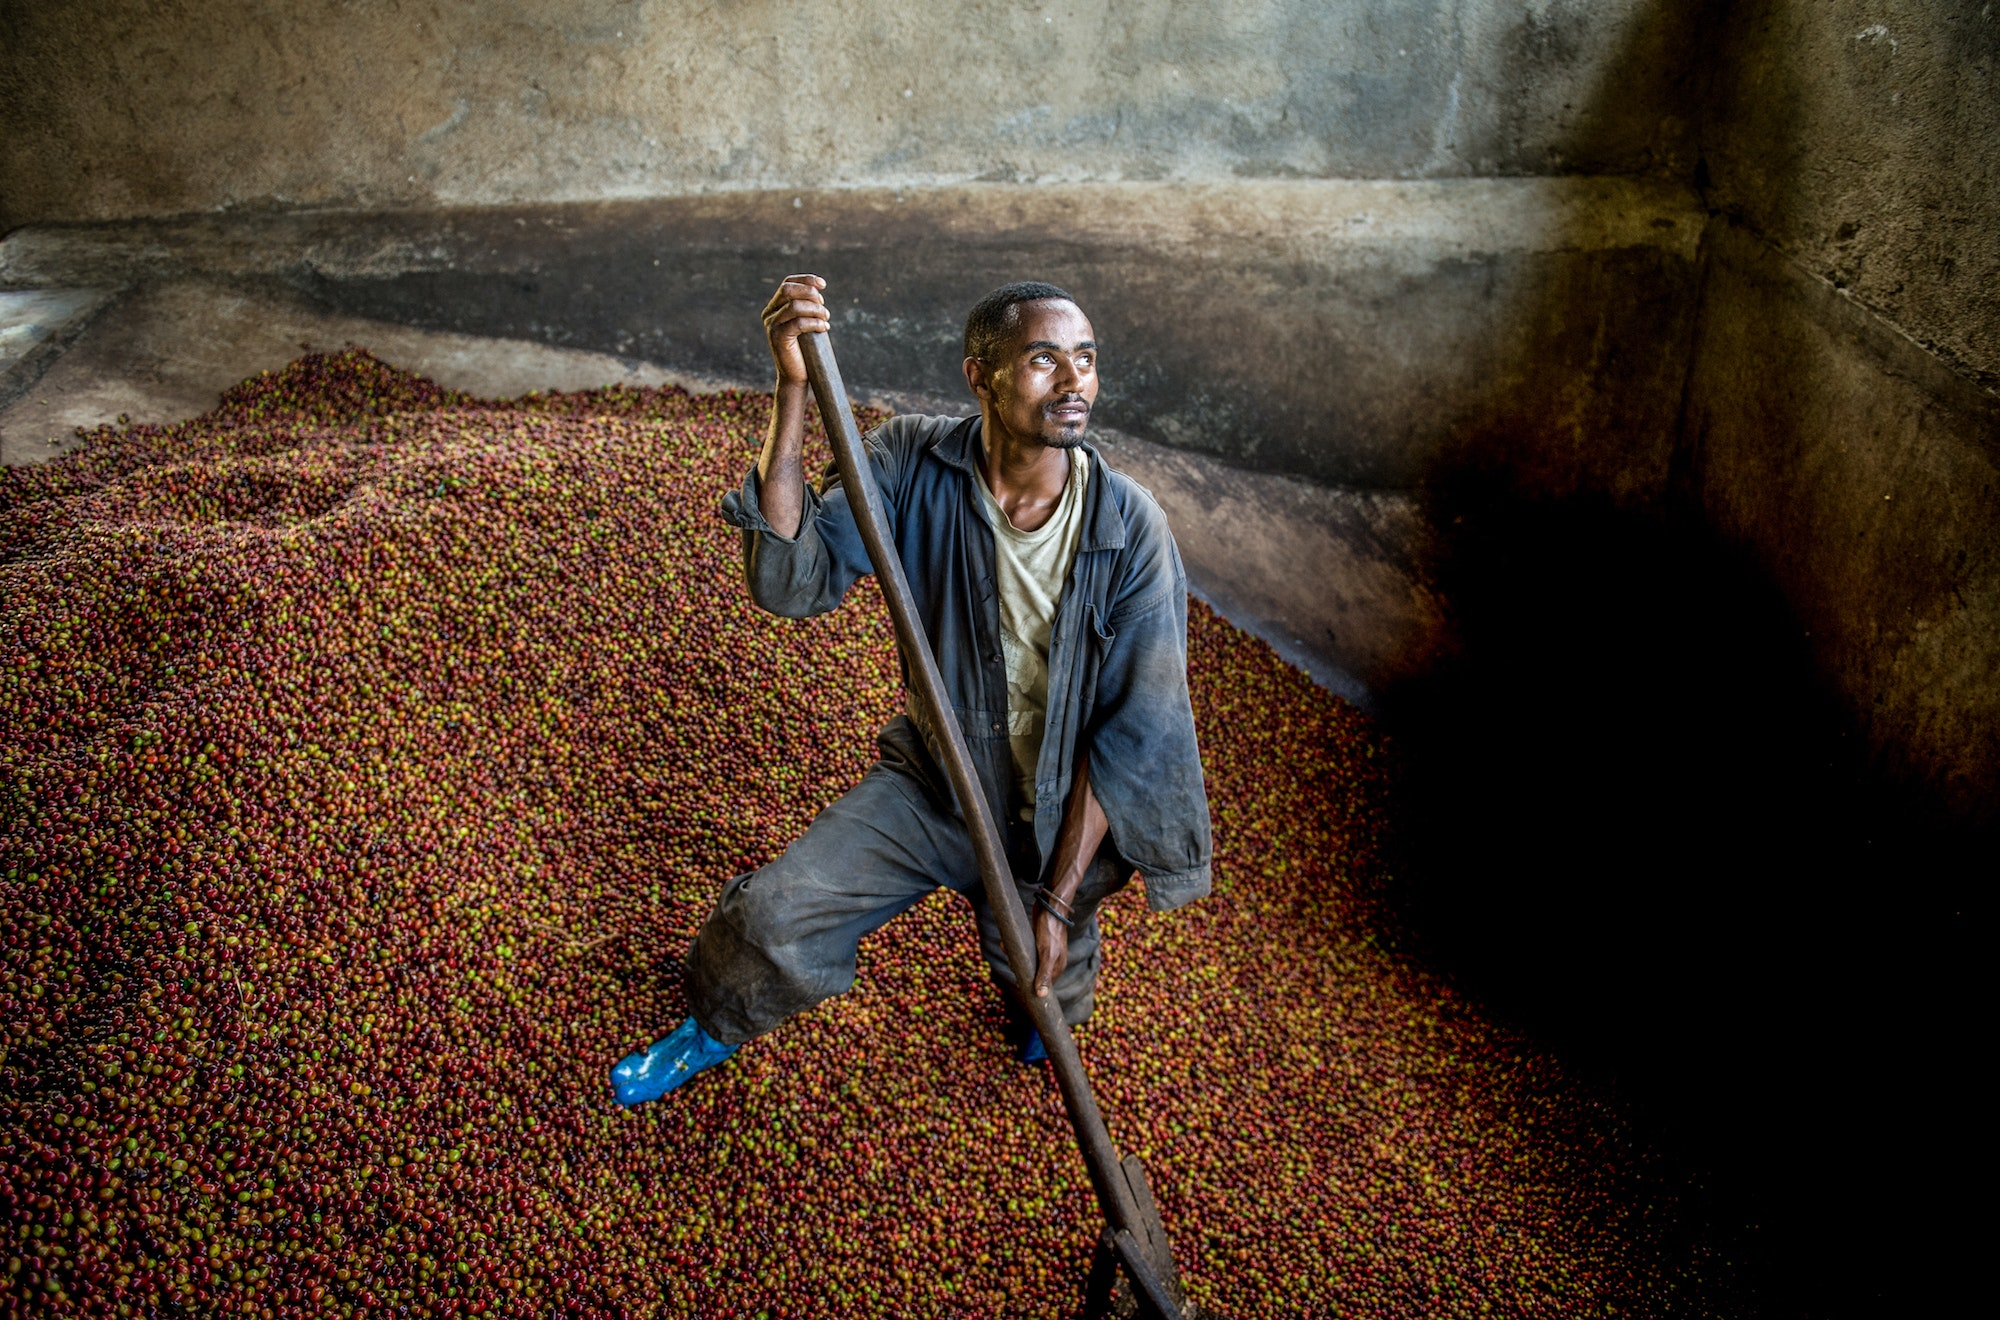 Coffee is critical to Ethiopia's economy, with a large portion of the population depending on its production and sale for livelihood.